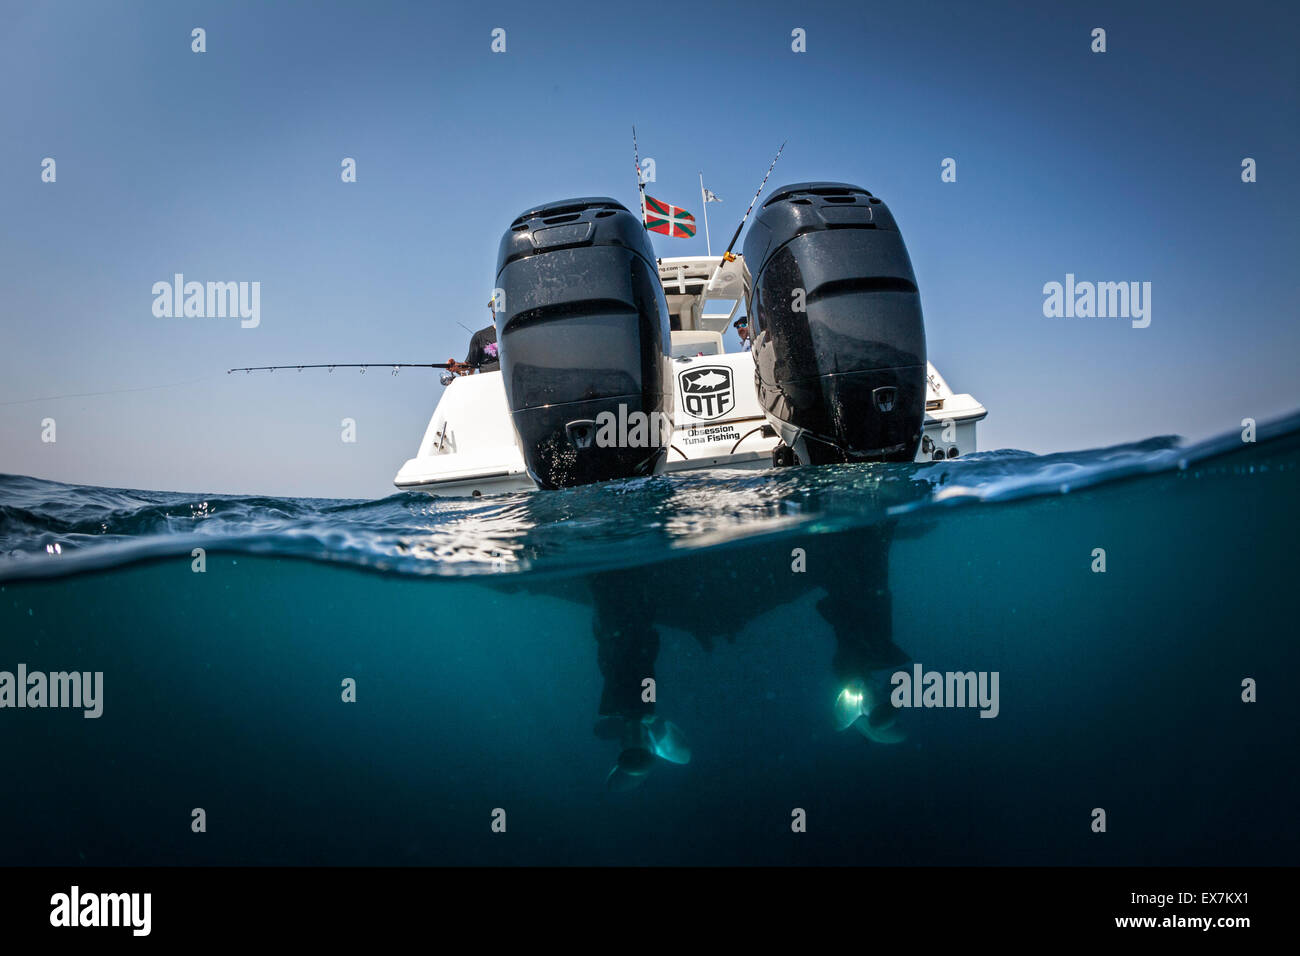 A Boston Whaler 320 Outrage speedboat with its 300 horsepower outboard Mercury motors. - Stock Image